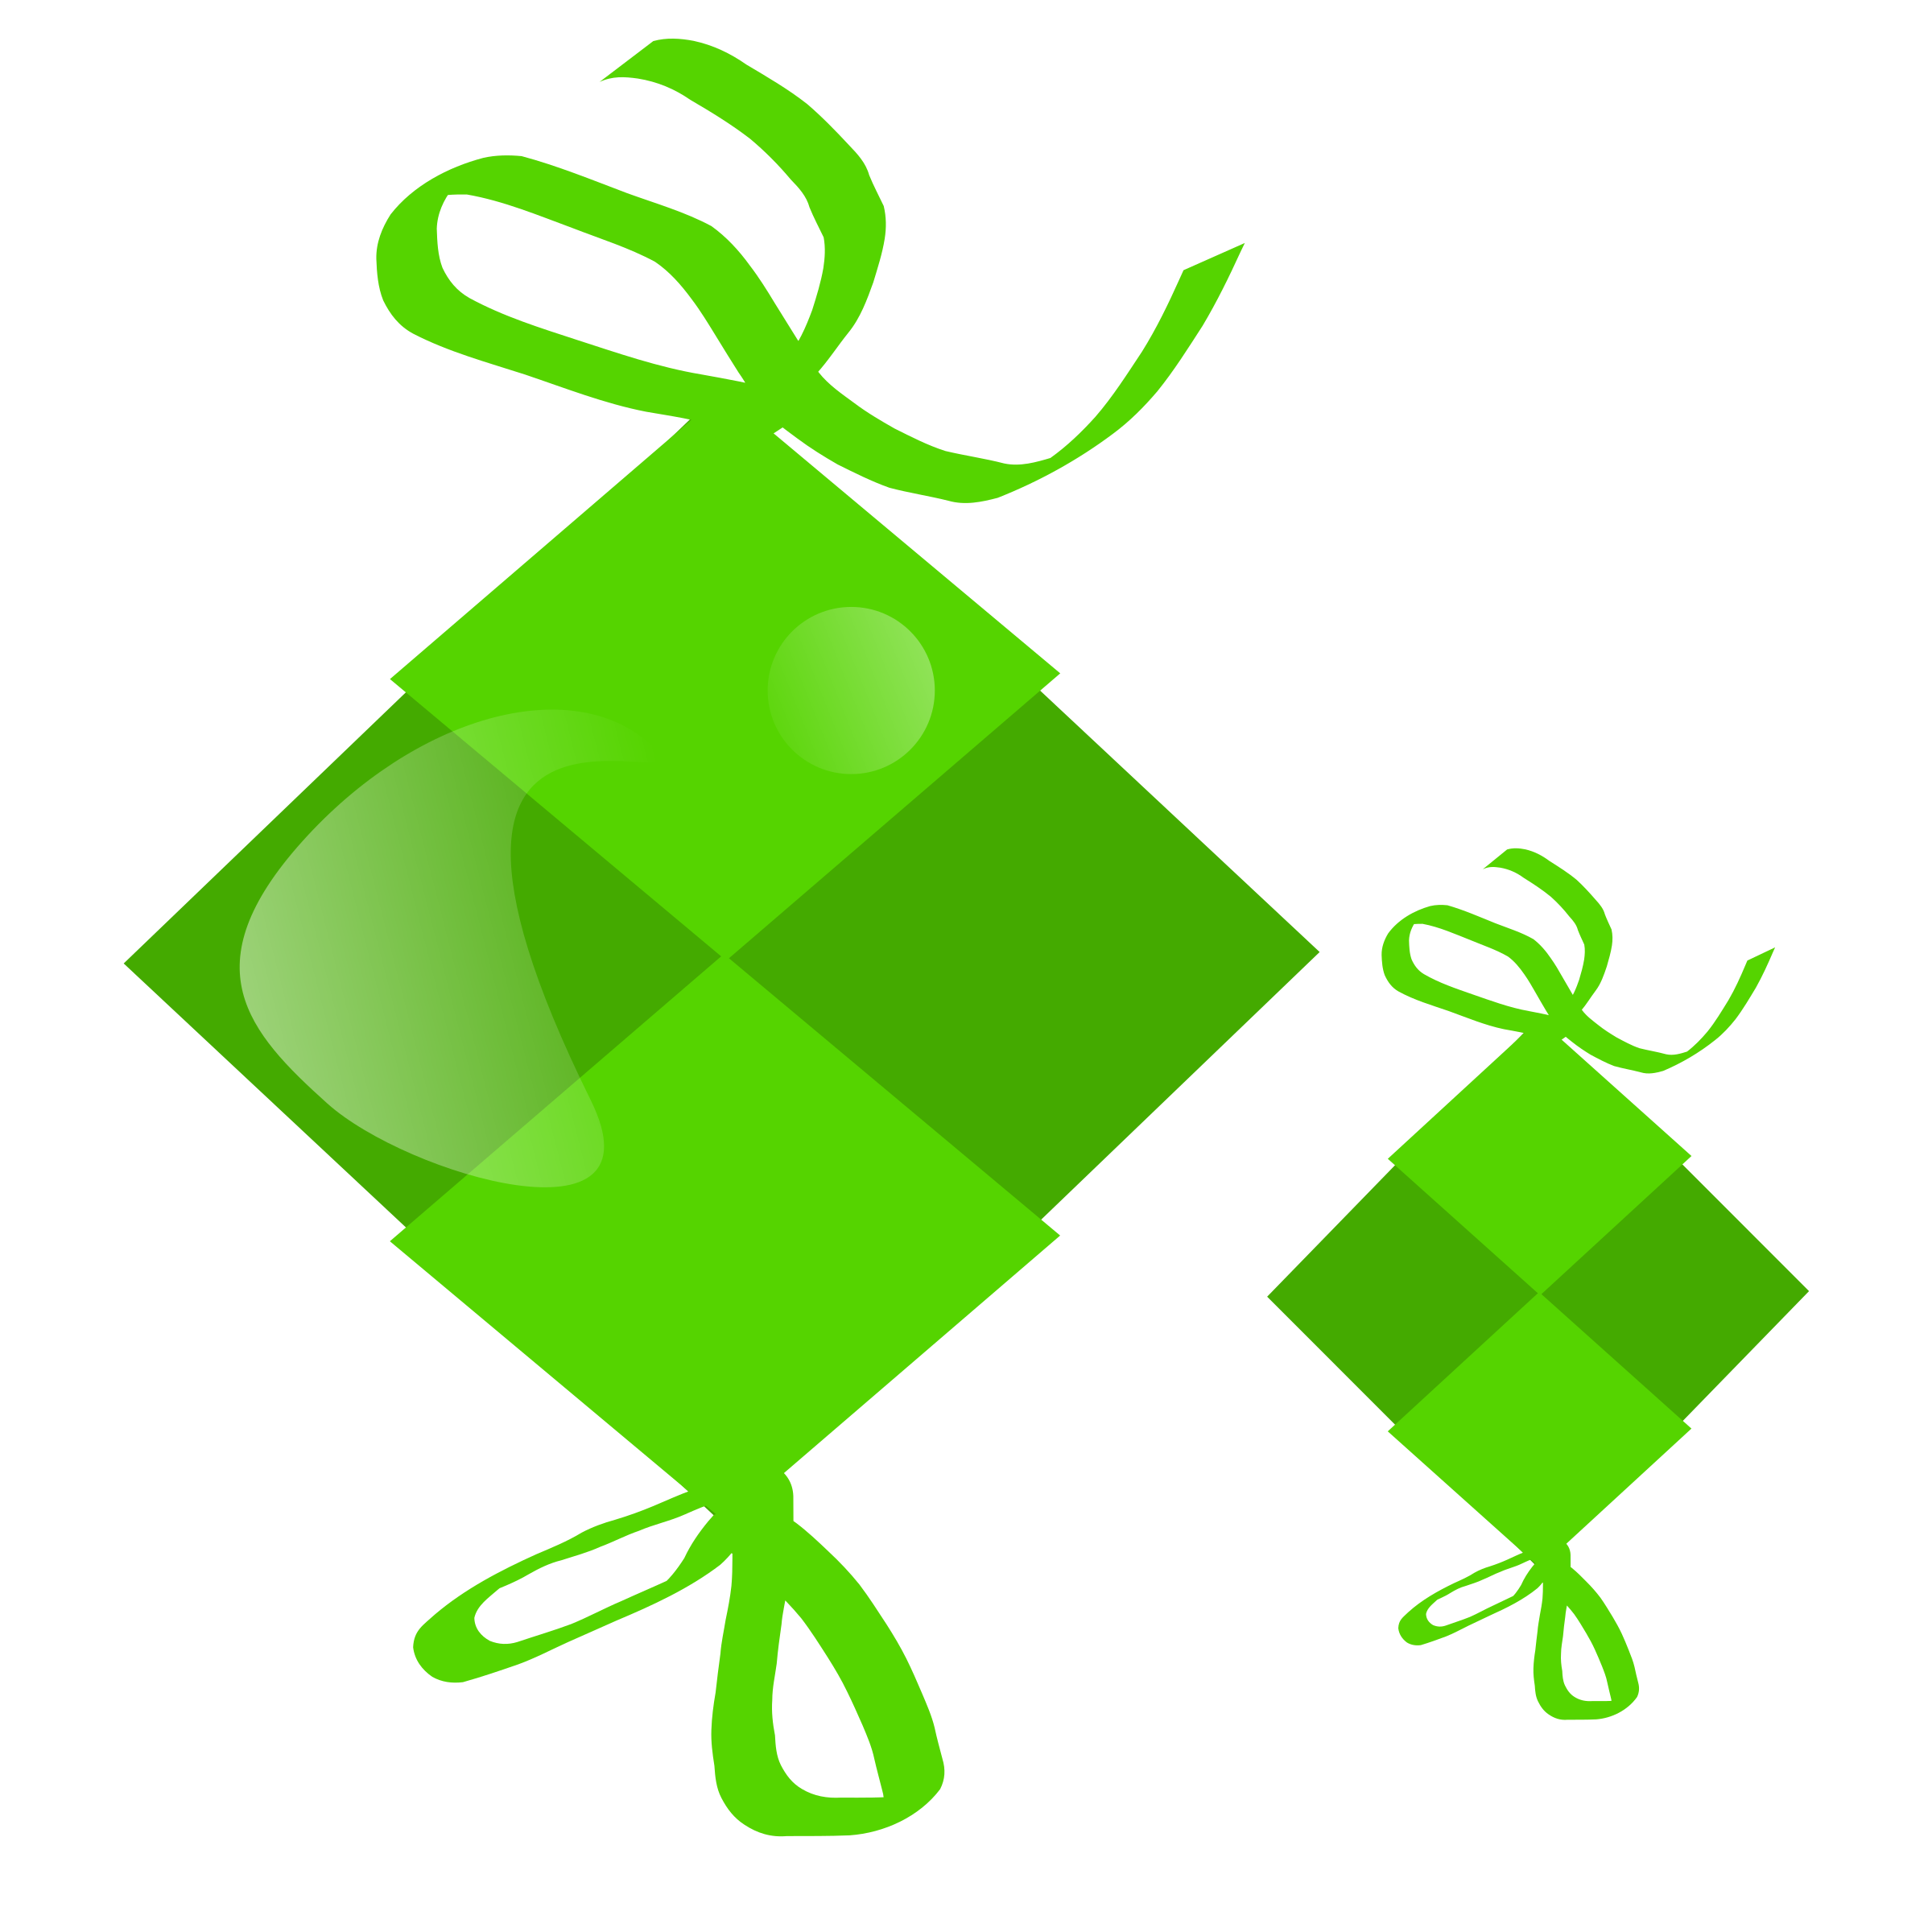 Royalty free png images. Ketupat icons and downloads